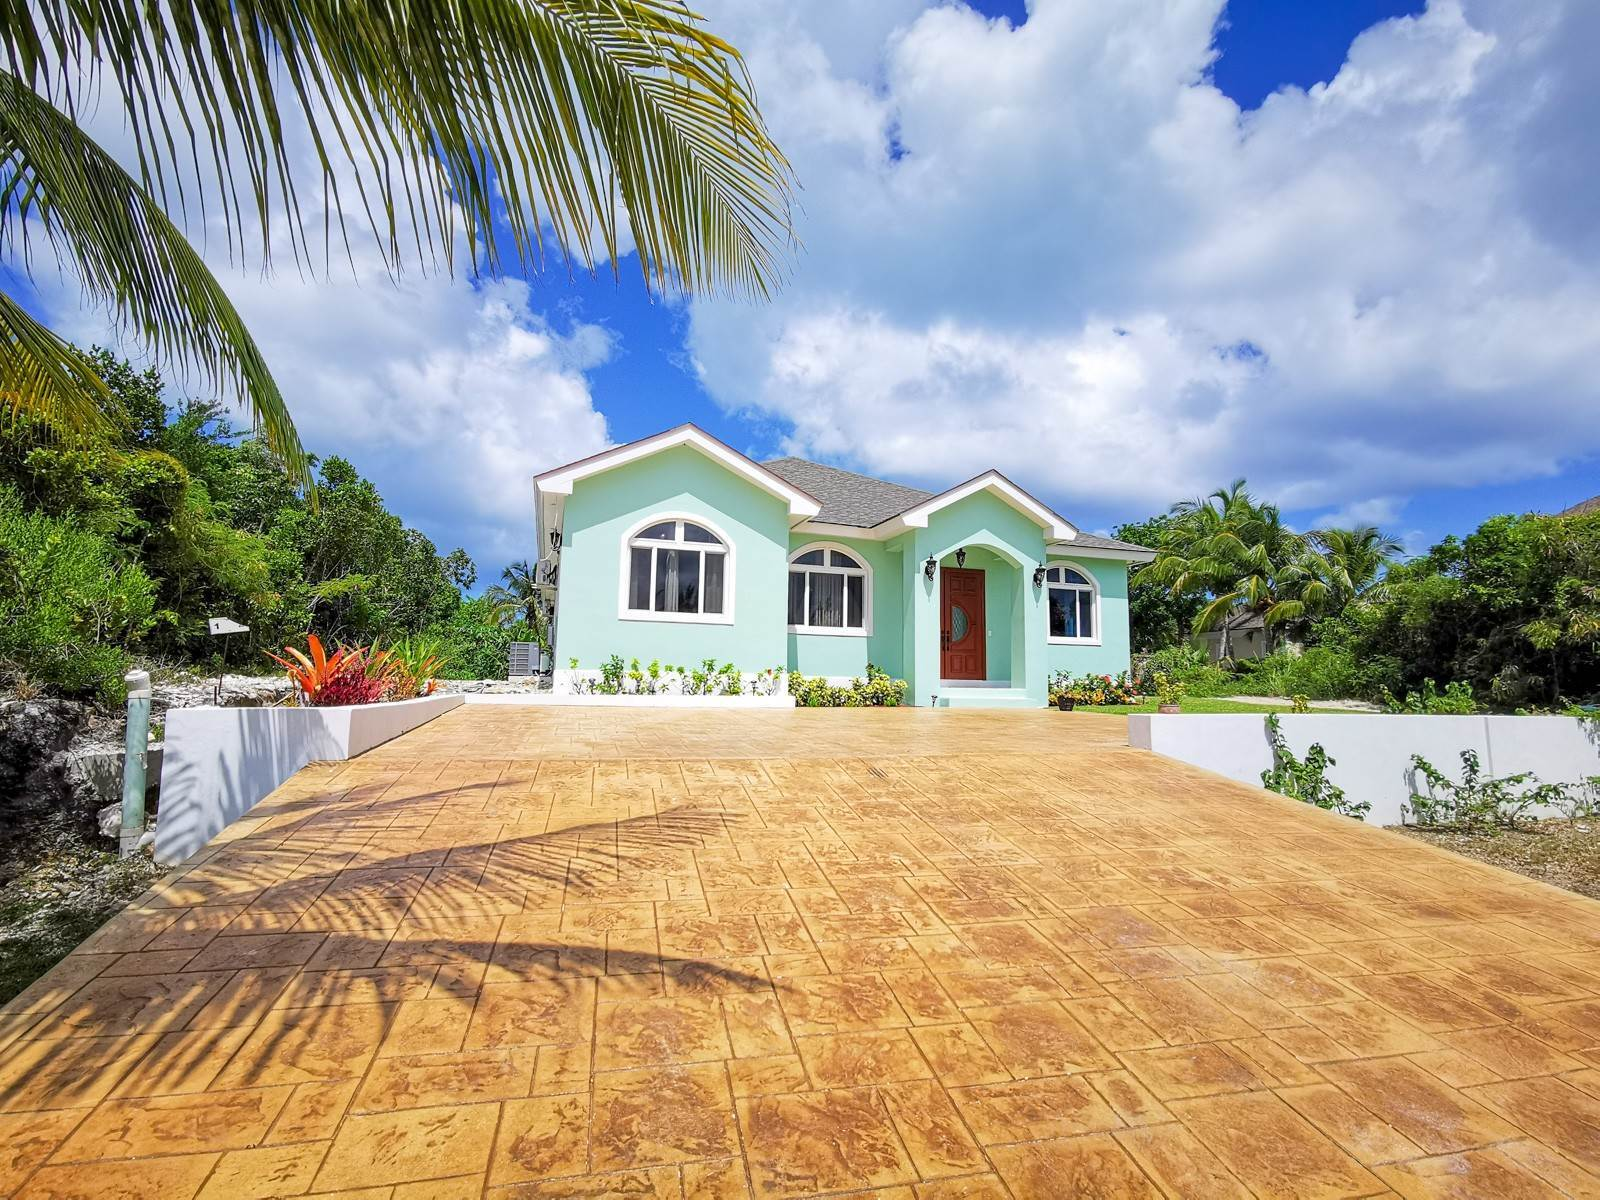 27. Single Family Homes for Sale at Villa Greenway House for Sale - MLS 41427 Charlotteville, Nassau And Paradise Island, Bahamas